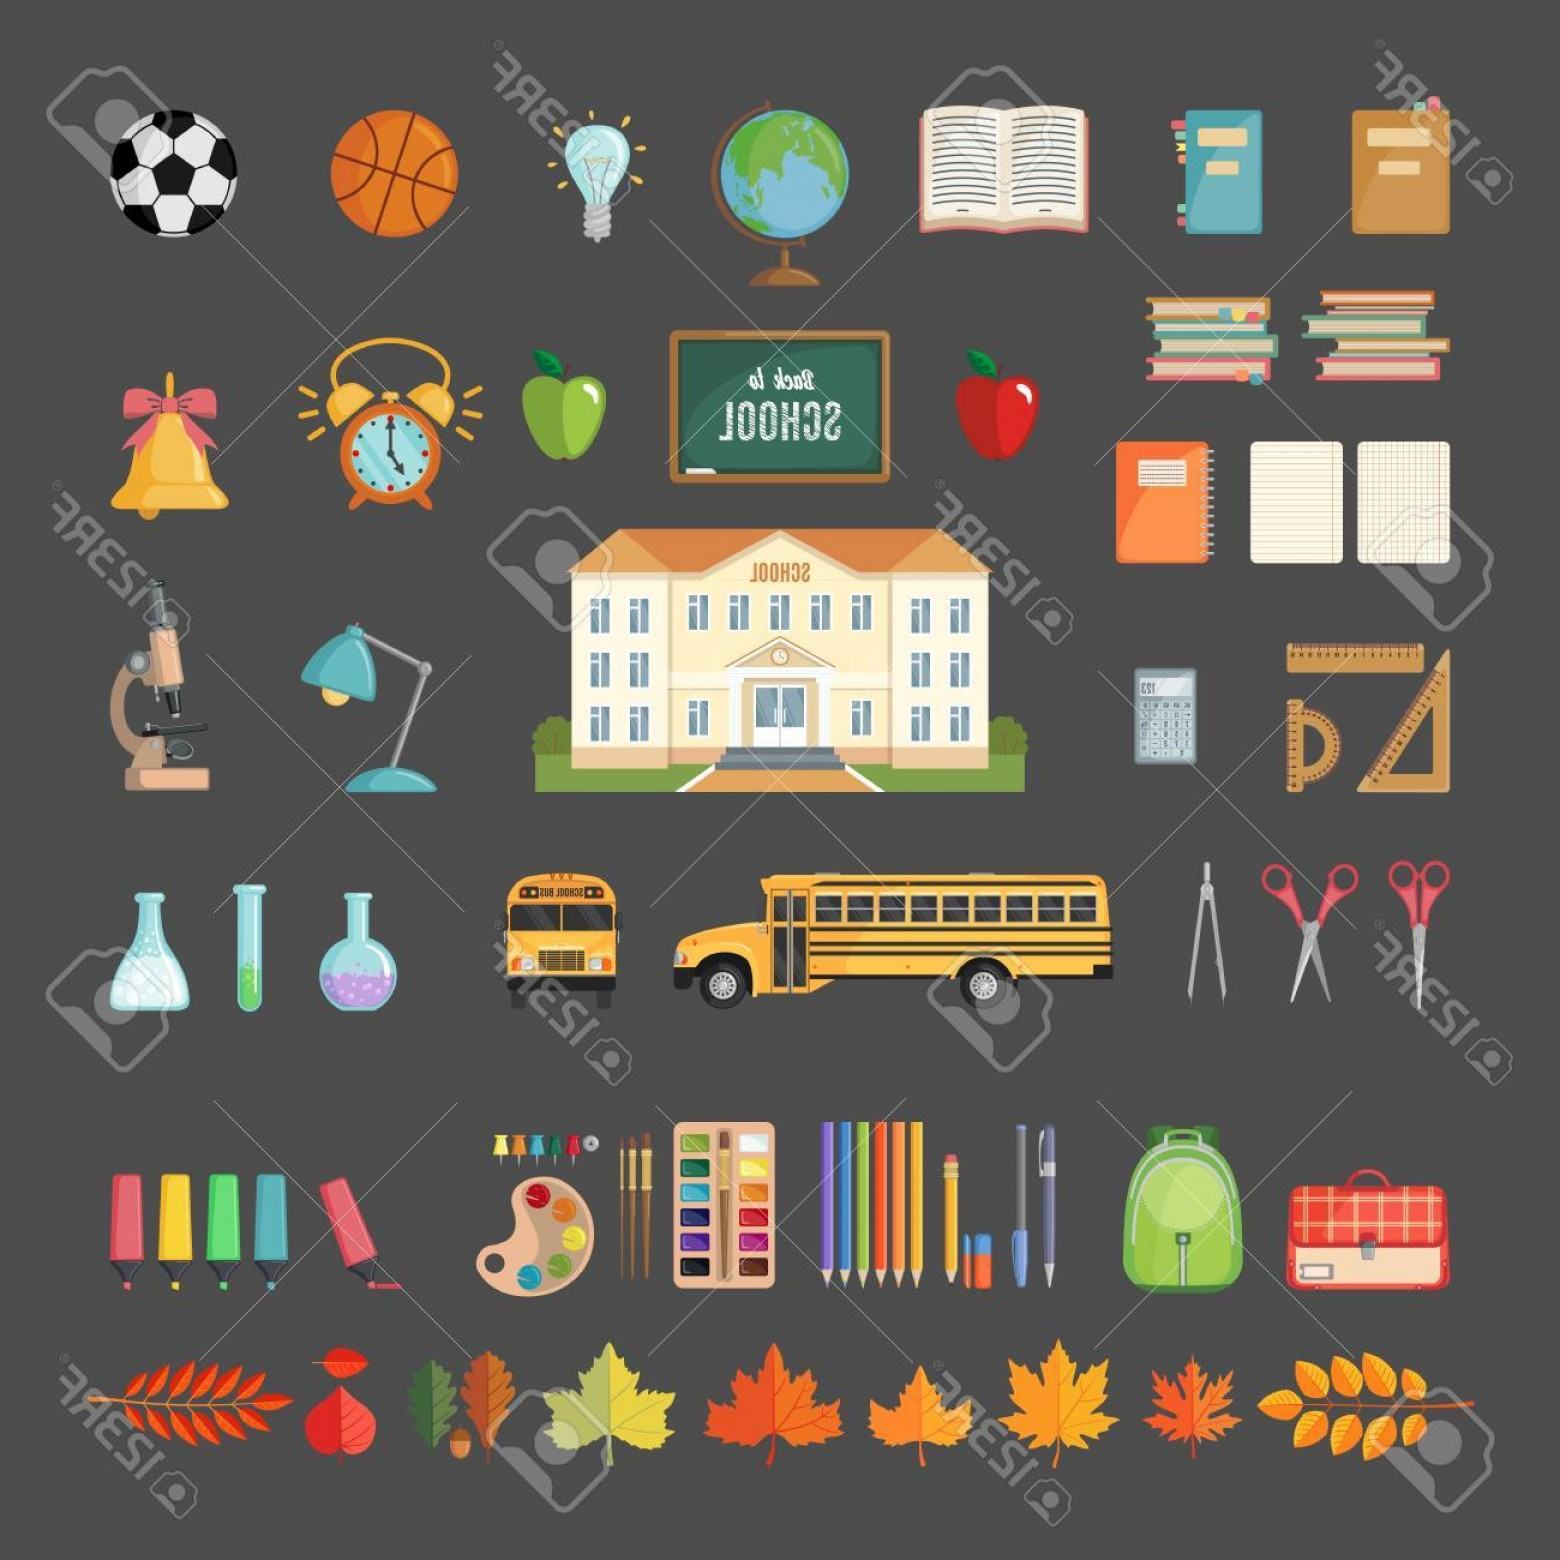 Individual School Supplies Vector: Photoset Of School Icons In Flat Style Selection Of Various Individual School Supplies On Gray Background